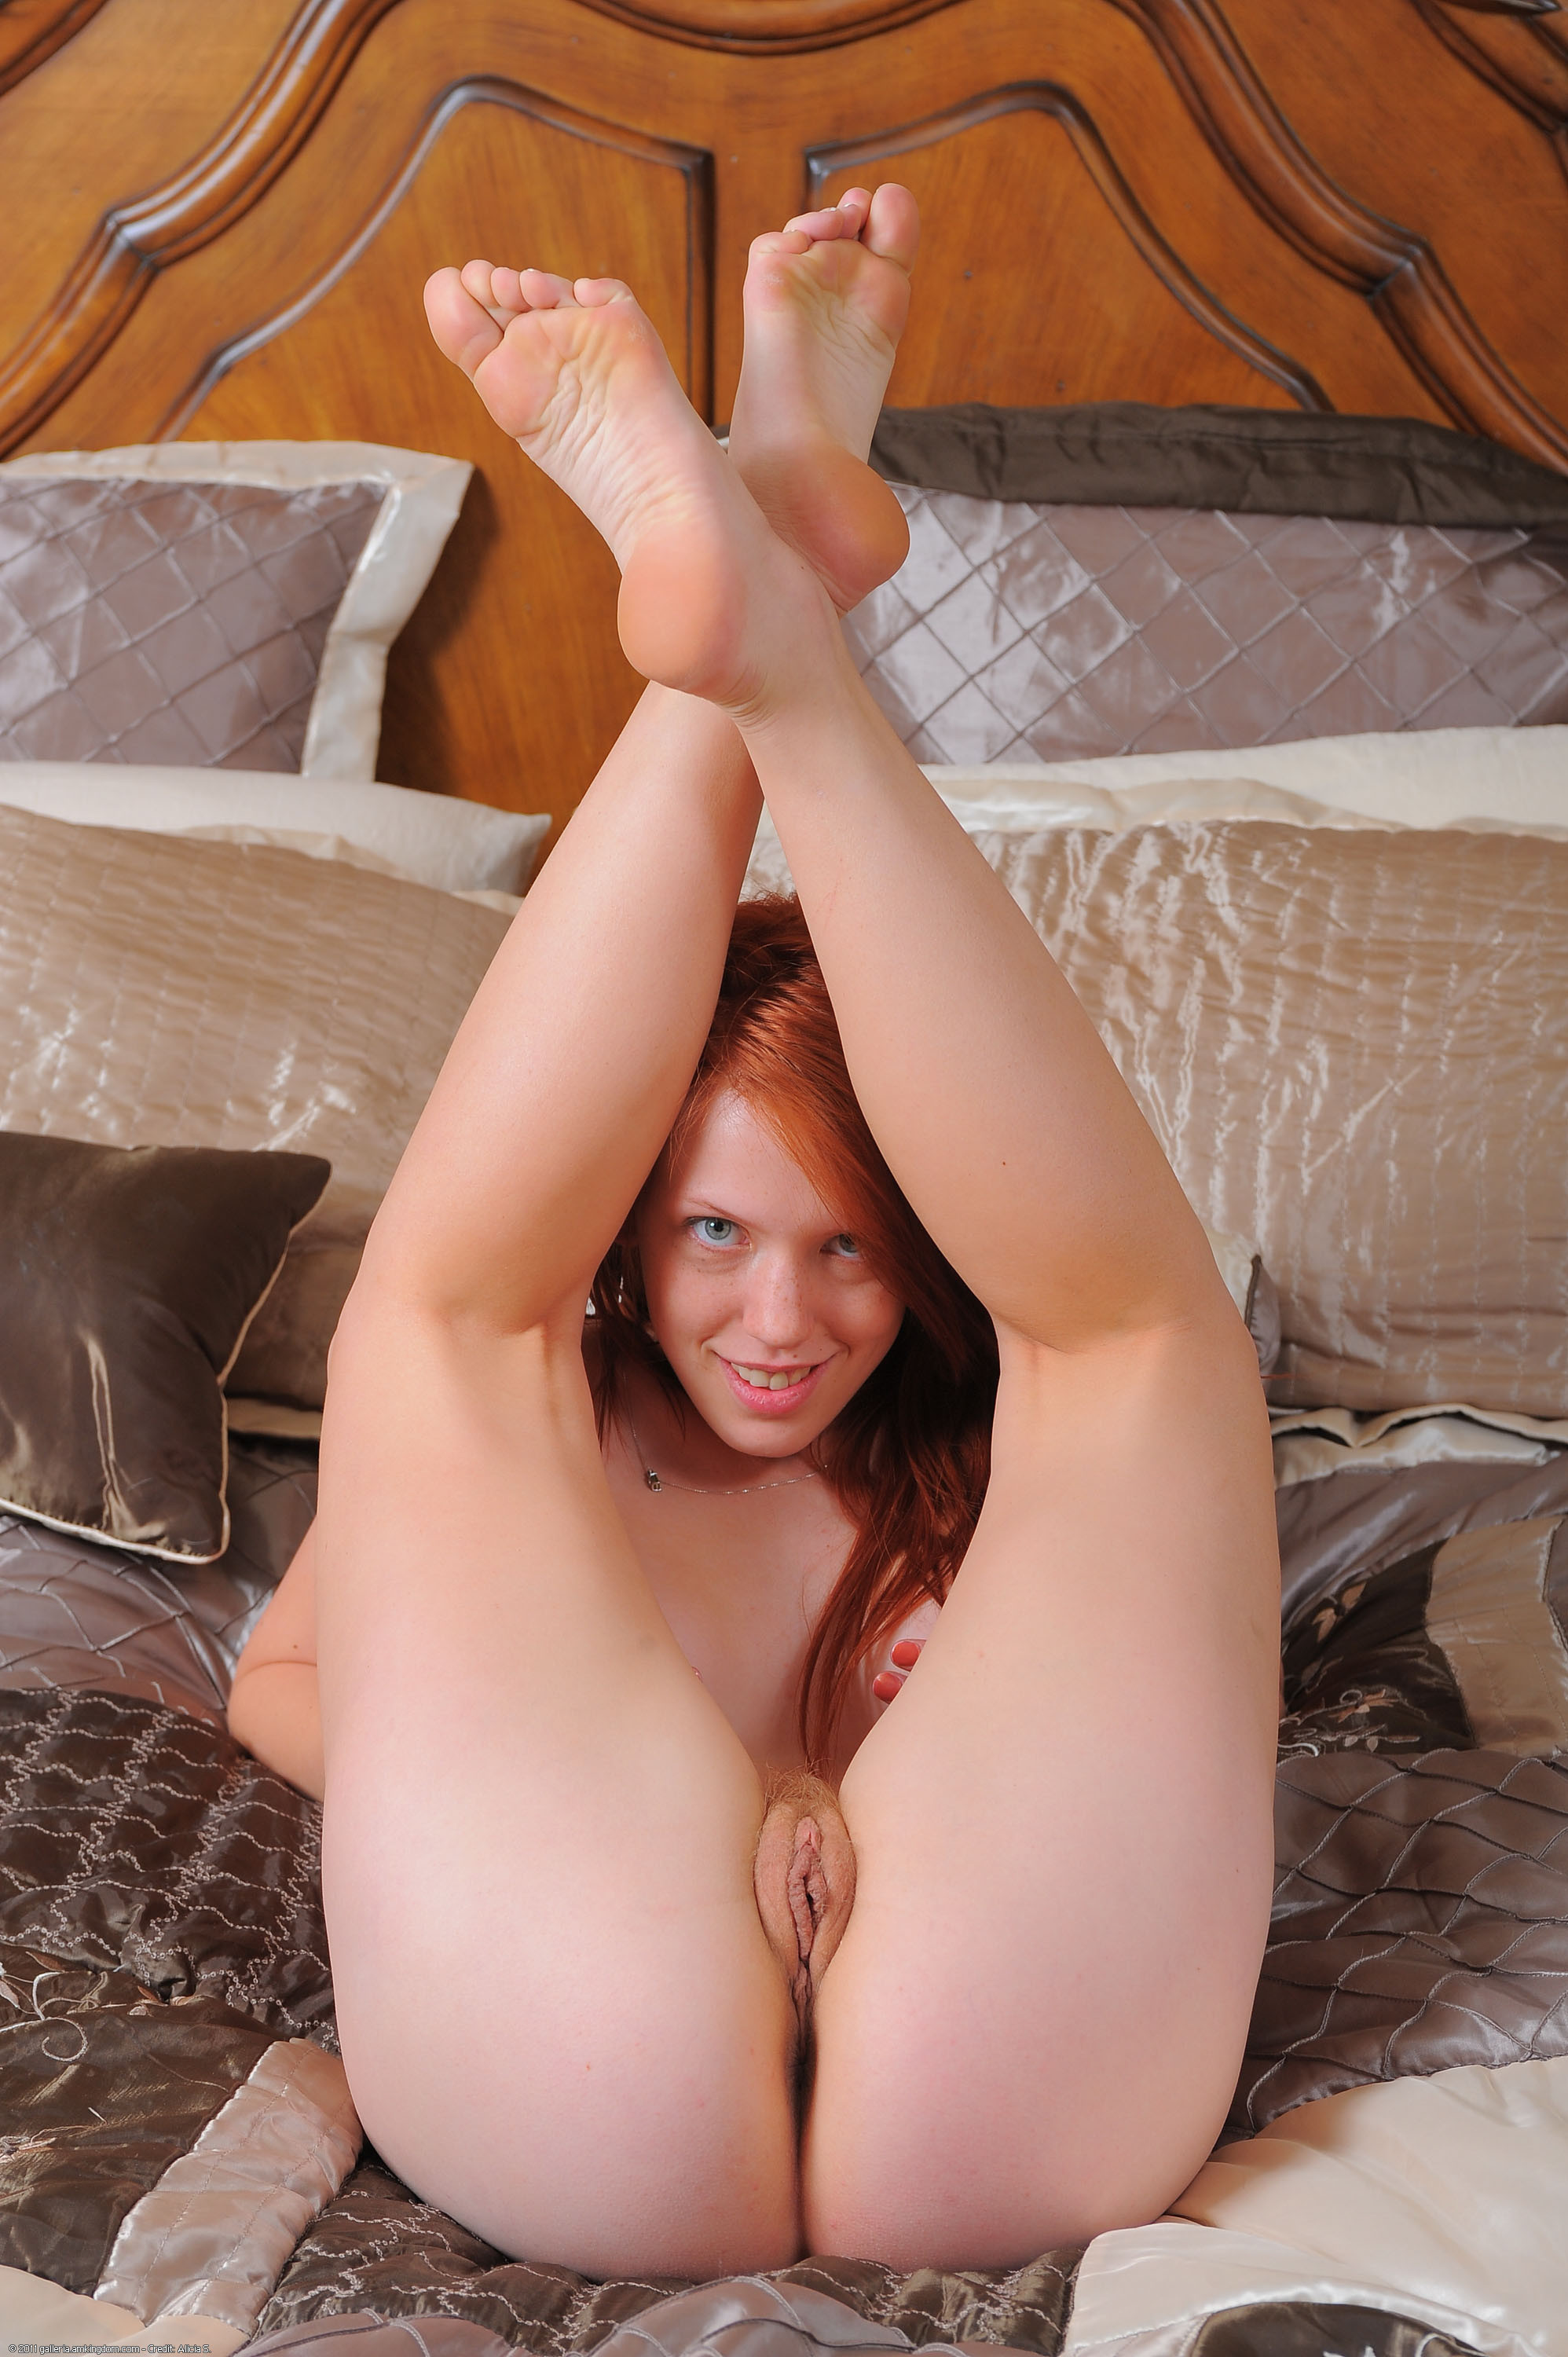 pippi longstocking star naked